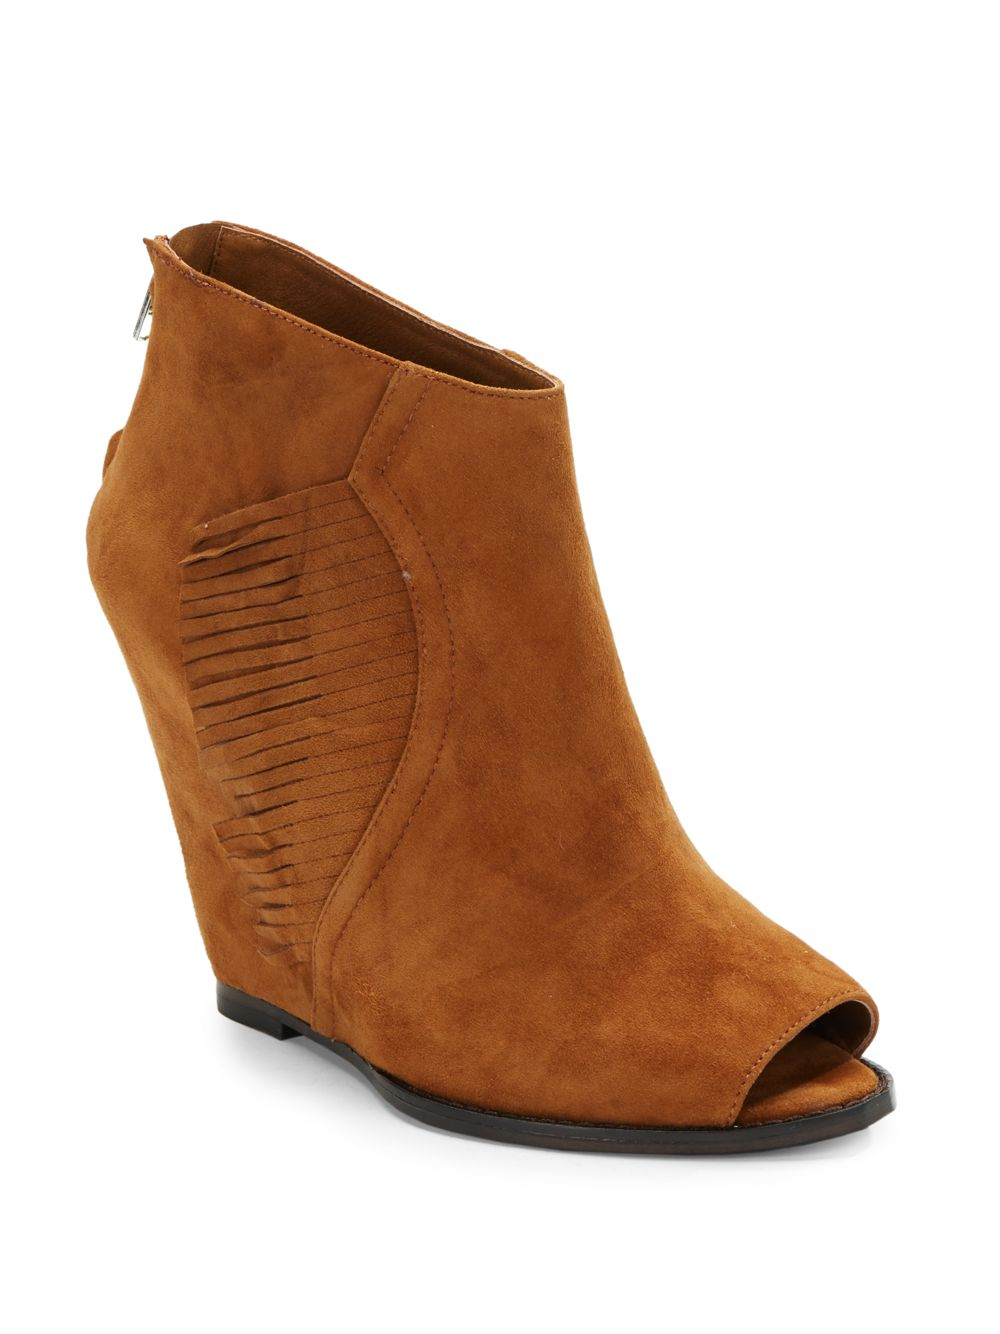 Women's Booties: Free Shipping on orders over $45 at Find the latest styles of Booties from truedfil3gz.gq - Your Online Women's Shoes Store! Get 5% in rewards with Club O!